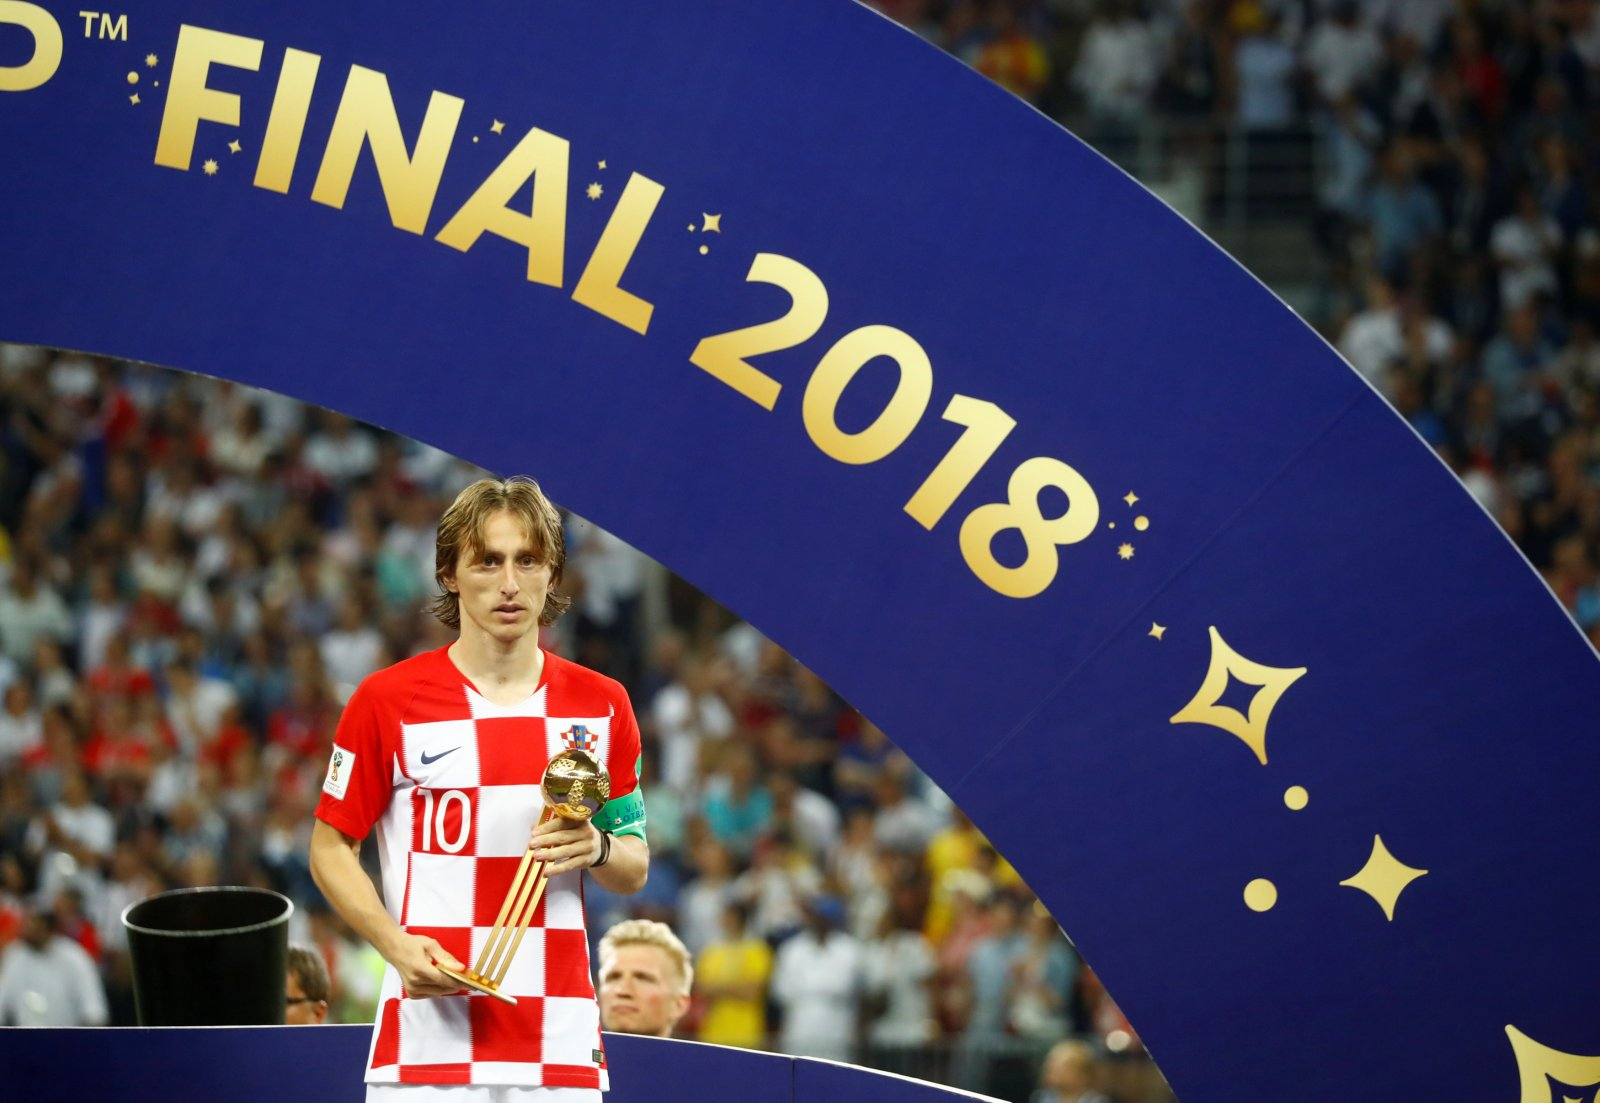 Luka Modric wins Golden Ball award at 2018 FIFA World Cup